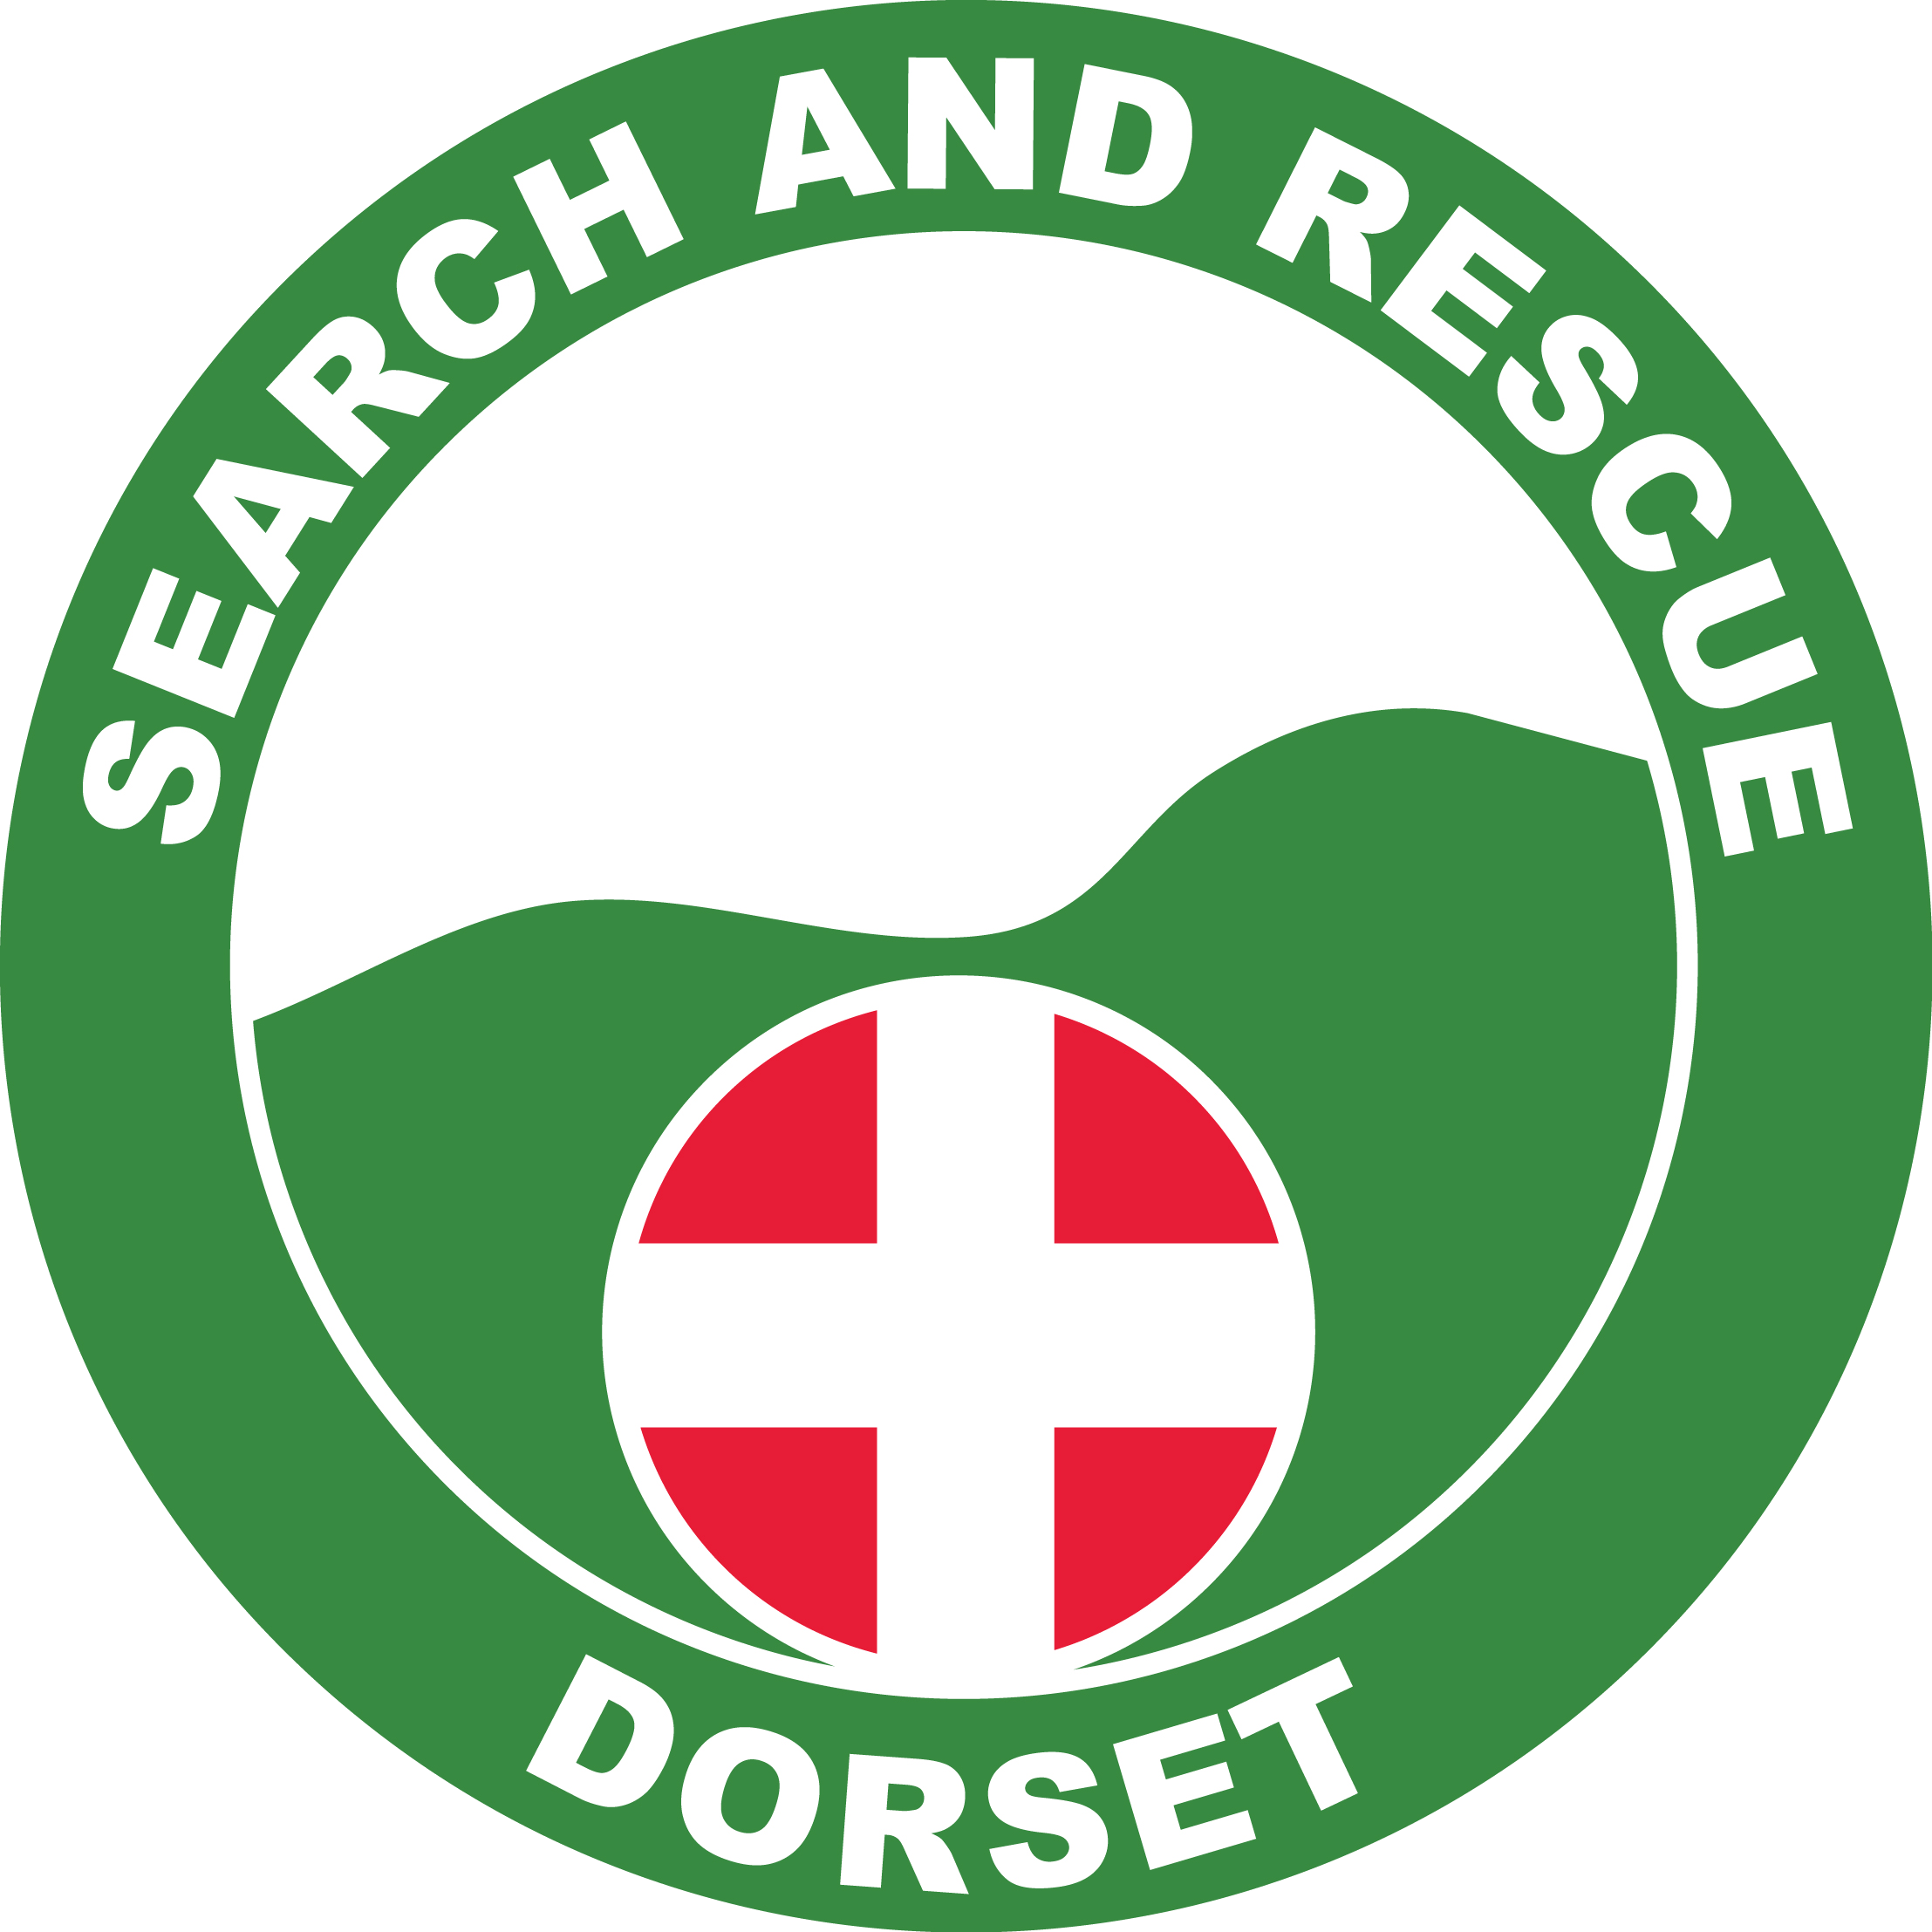 Dorset Search and Rescue logo